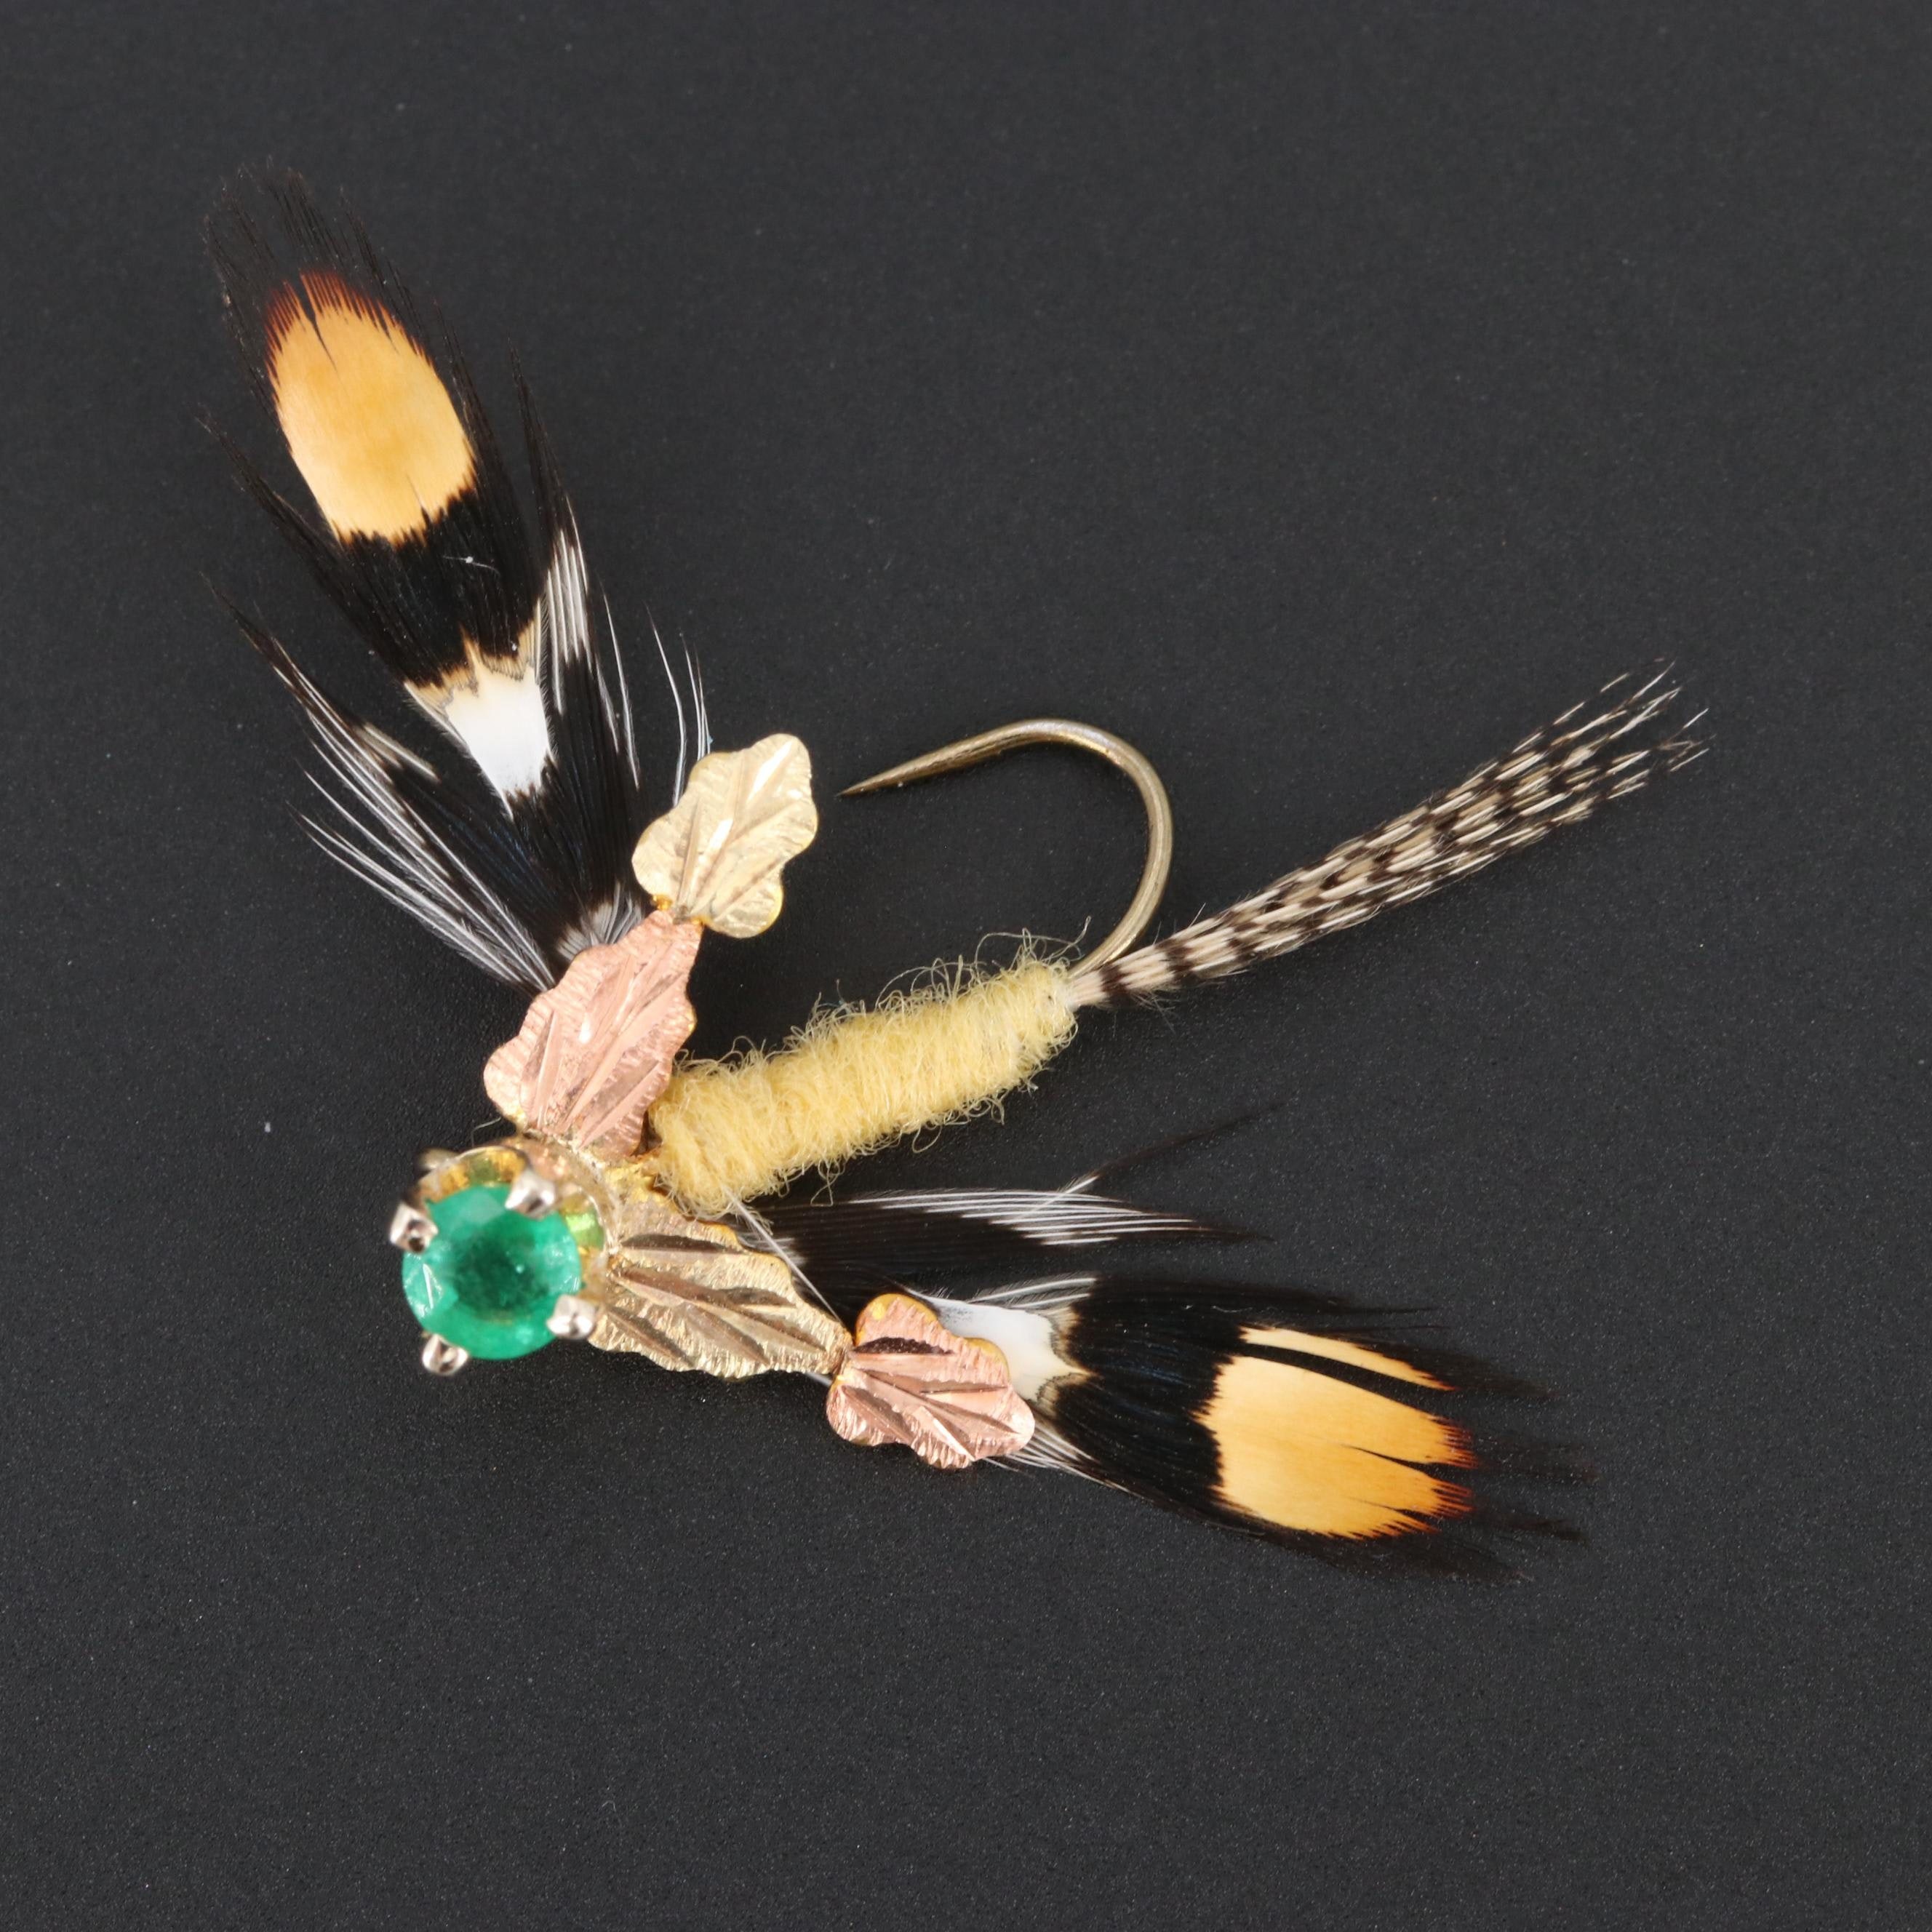 14K Yellow Gold Emerald Fly Fishing Lure with 12K Rose and Green Gold Accents